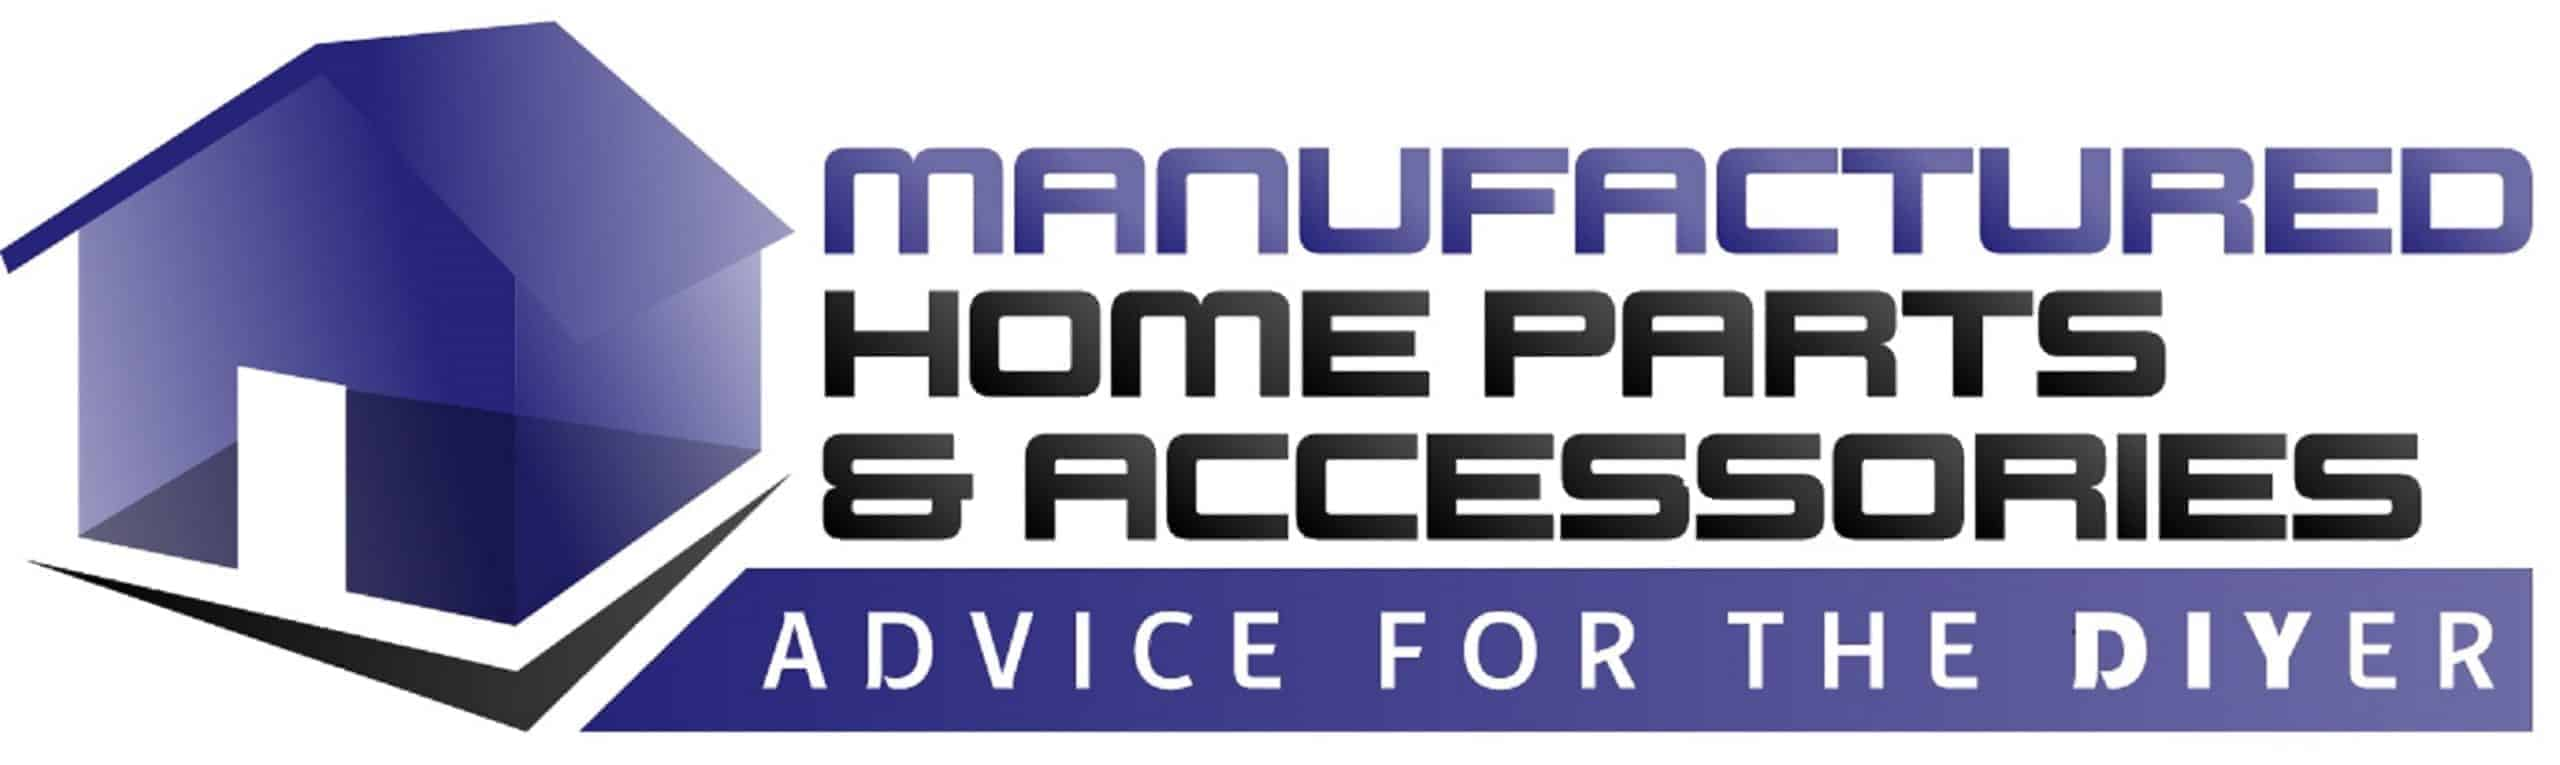 Manufactured Home Parts And Accessories